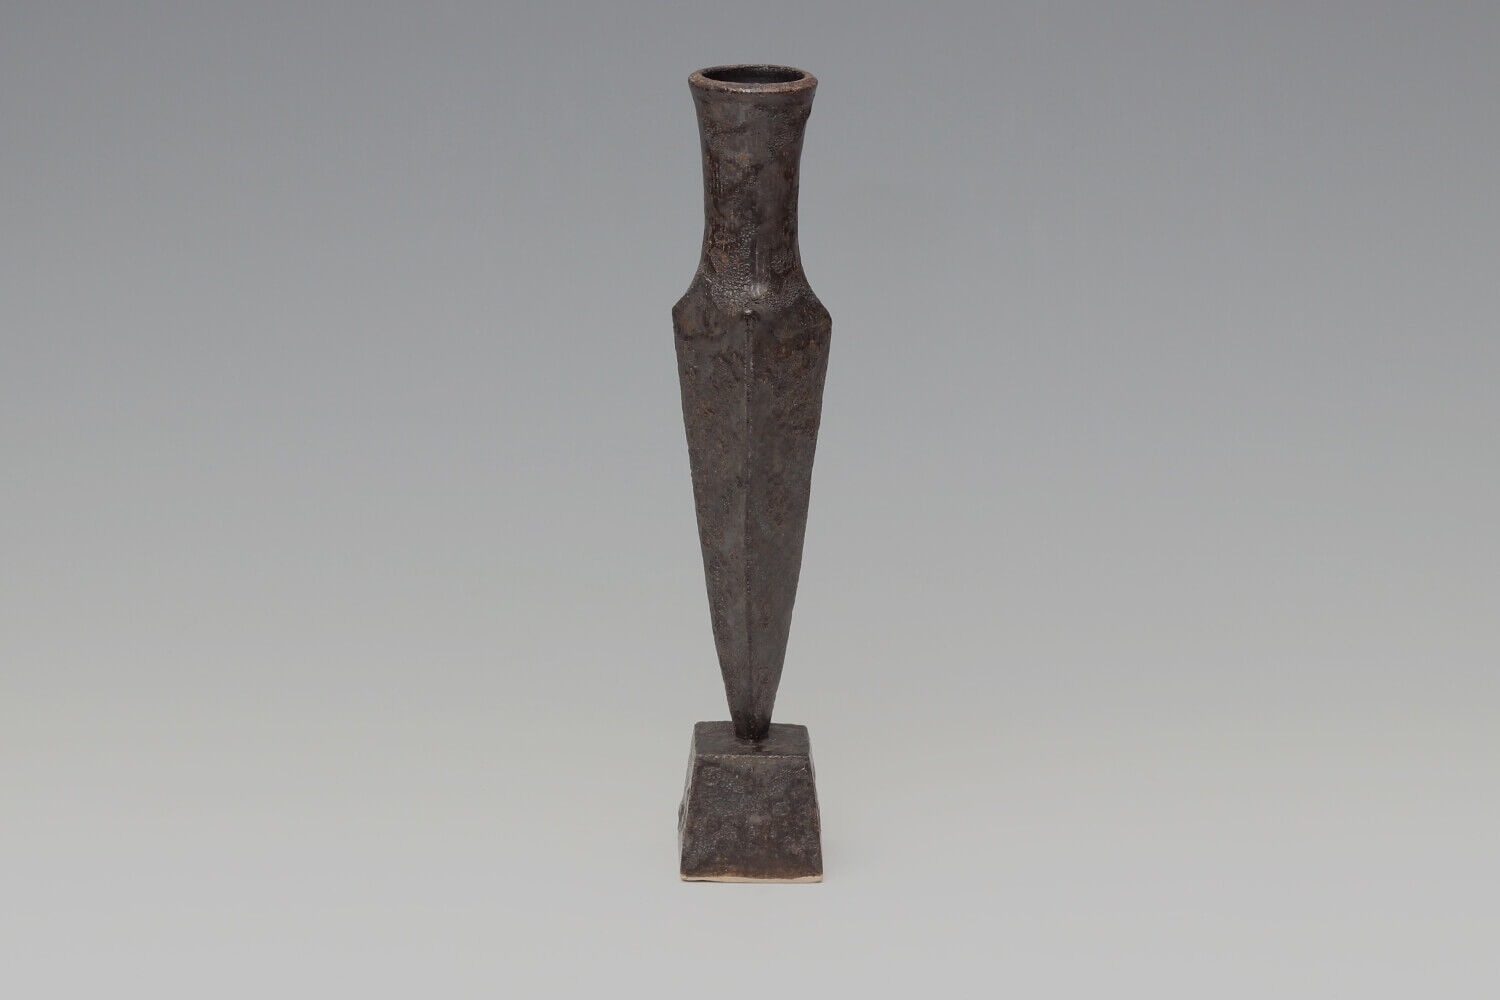 Chris Carter Ceramic Tall Speared Form 166